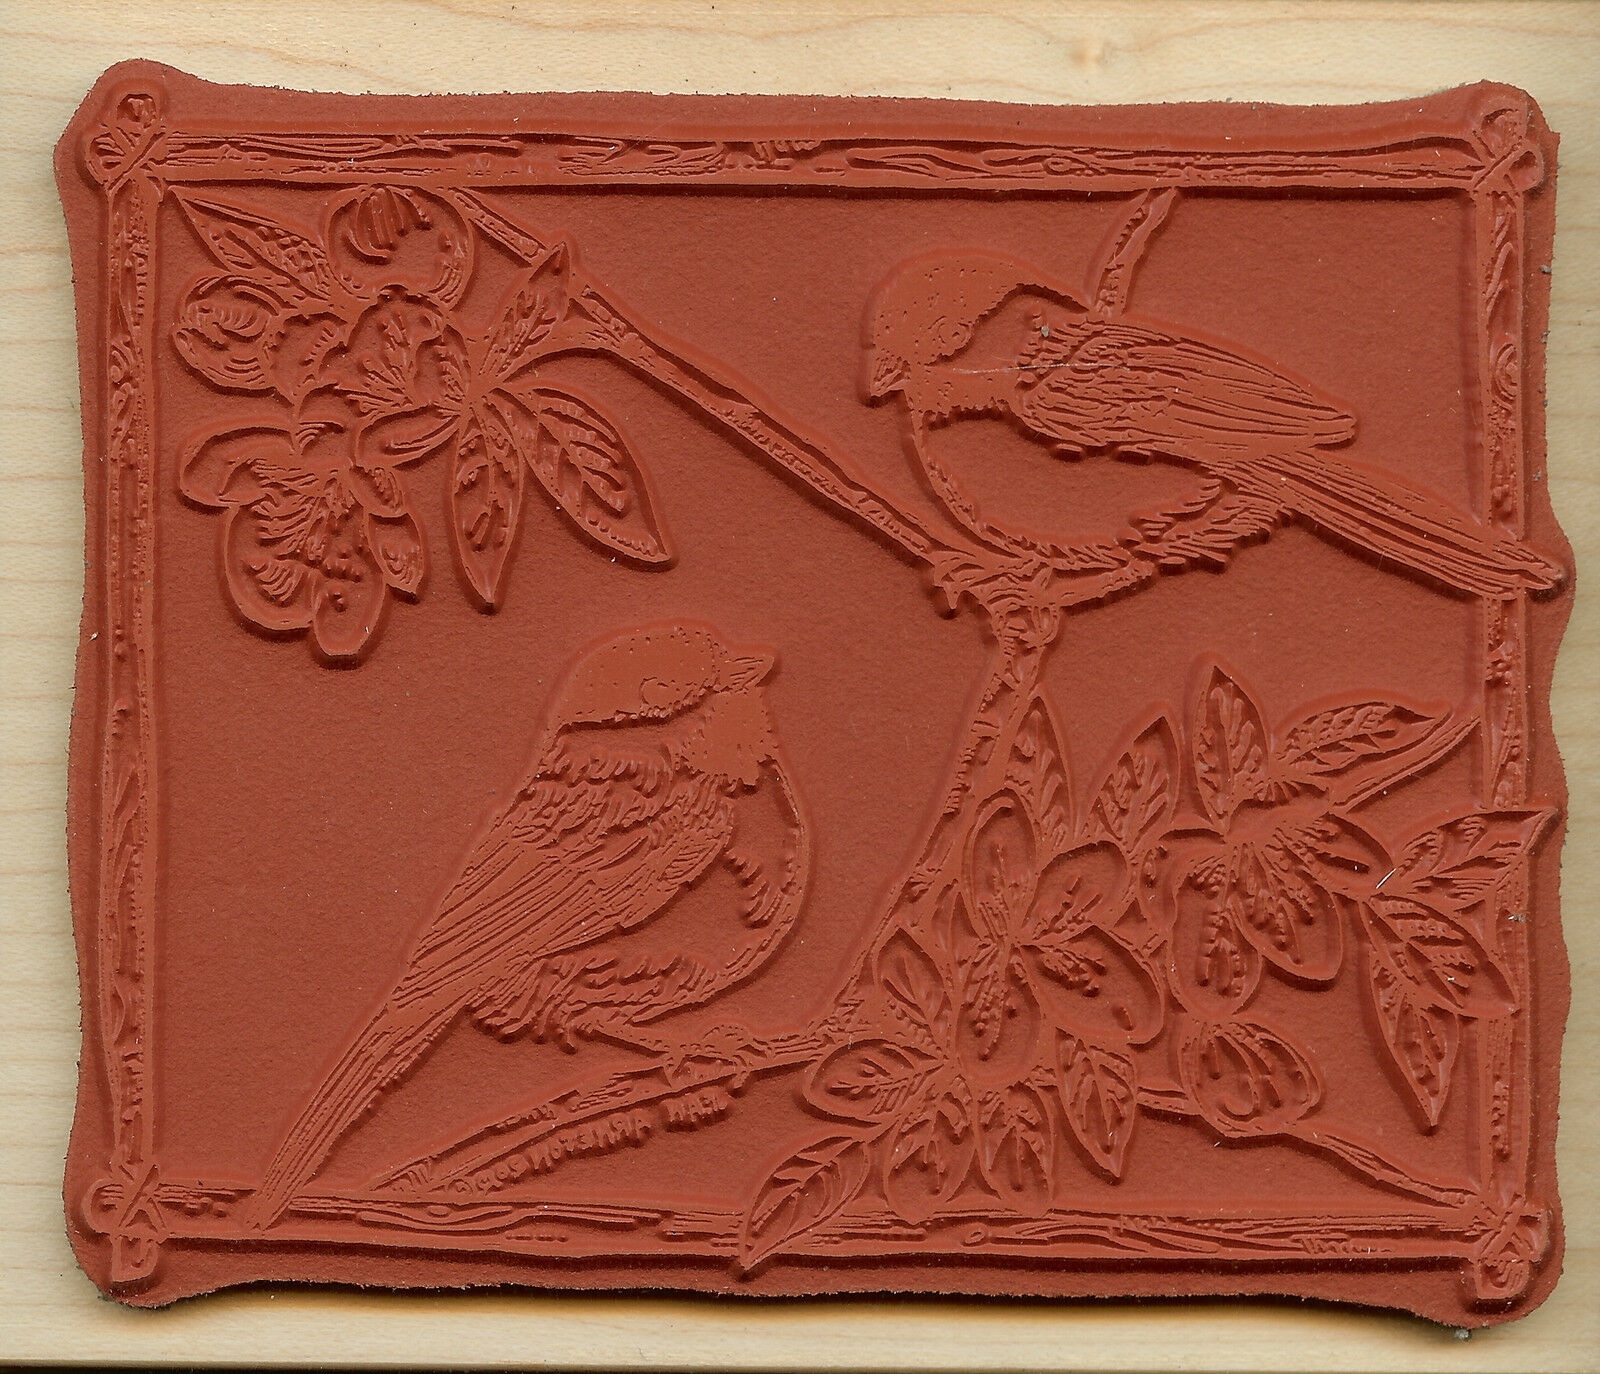 Bittersweet Basket Blossom Wood Mounted Rubber Stamp Northwoods Stamp P8683 New